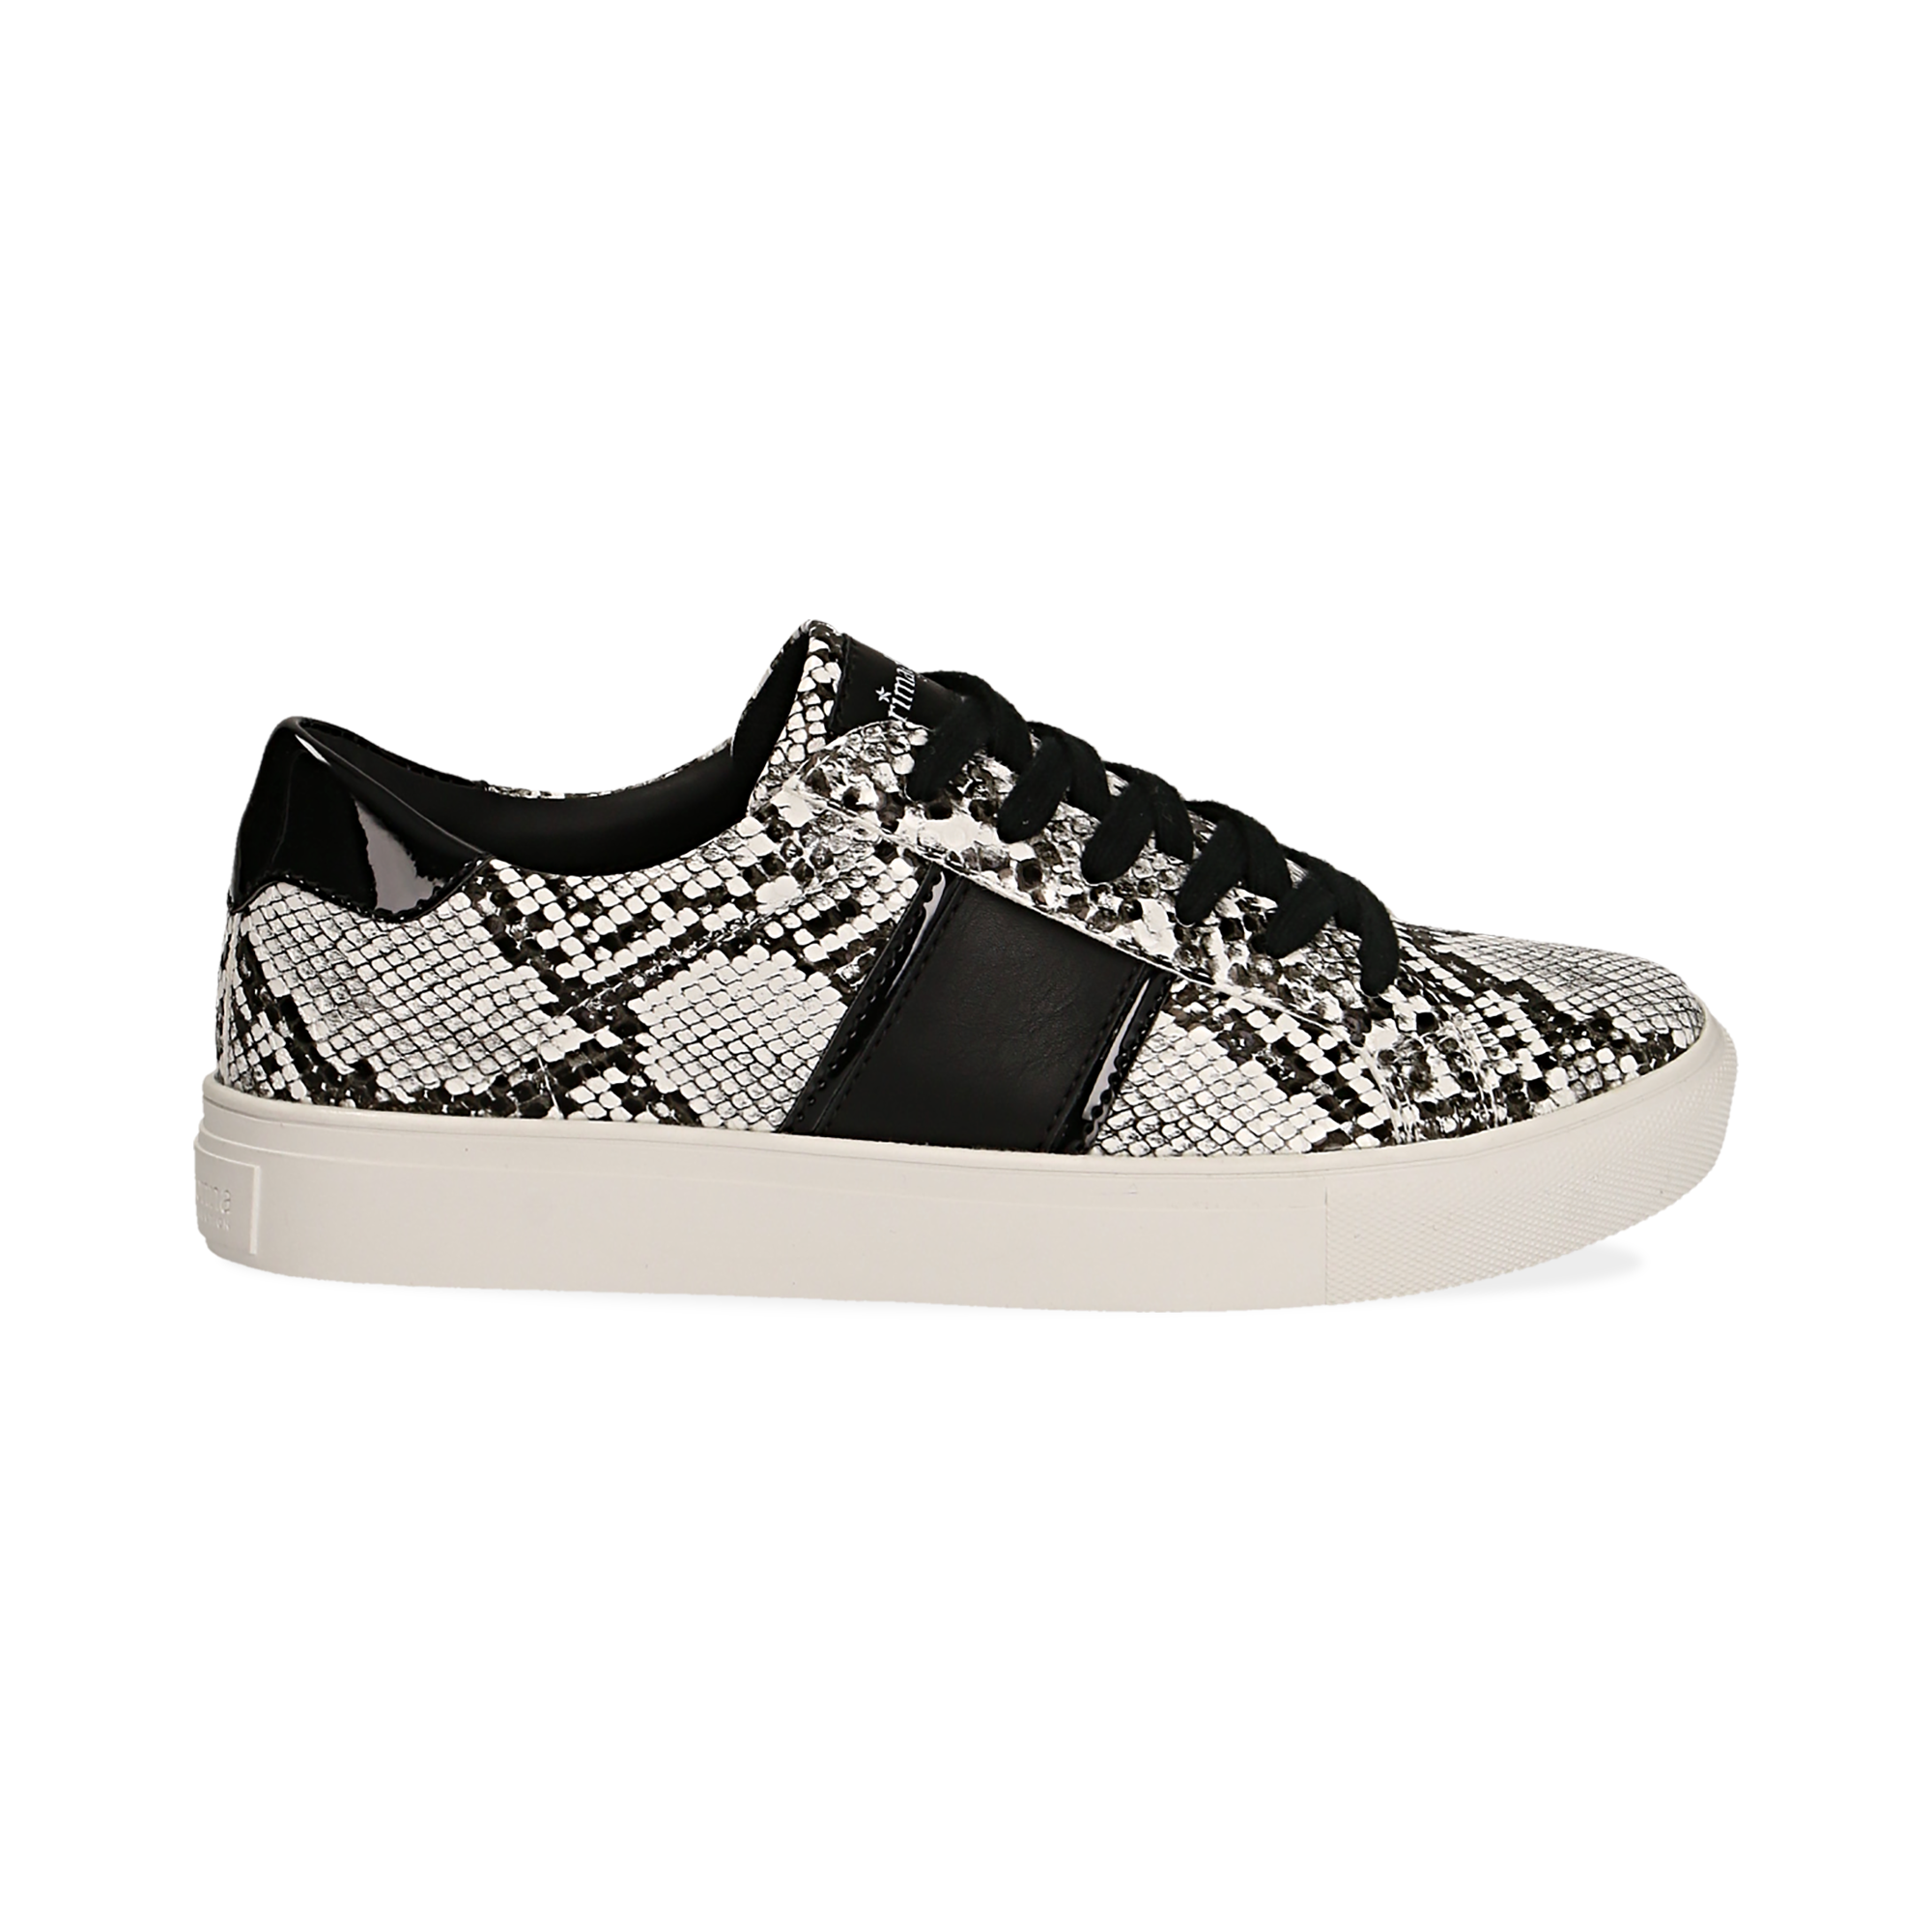 Sneakers bianco/nere in eco-pelle, effetto snake skin